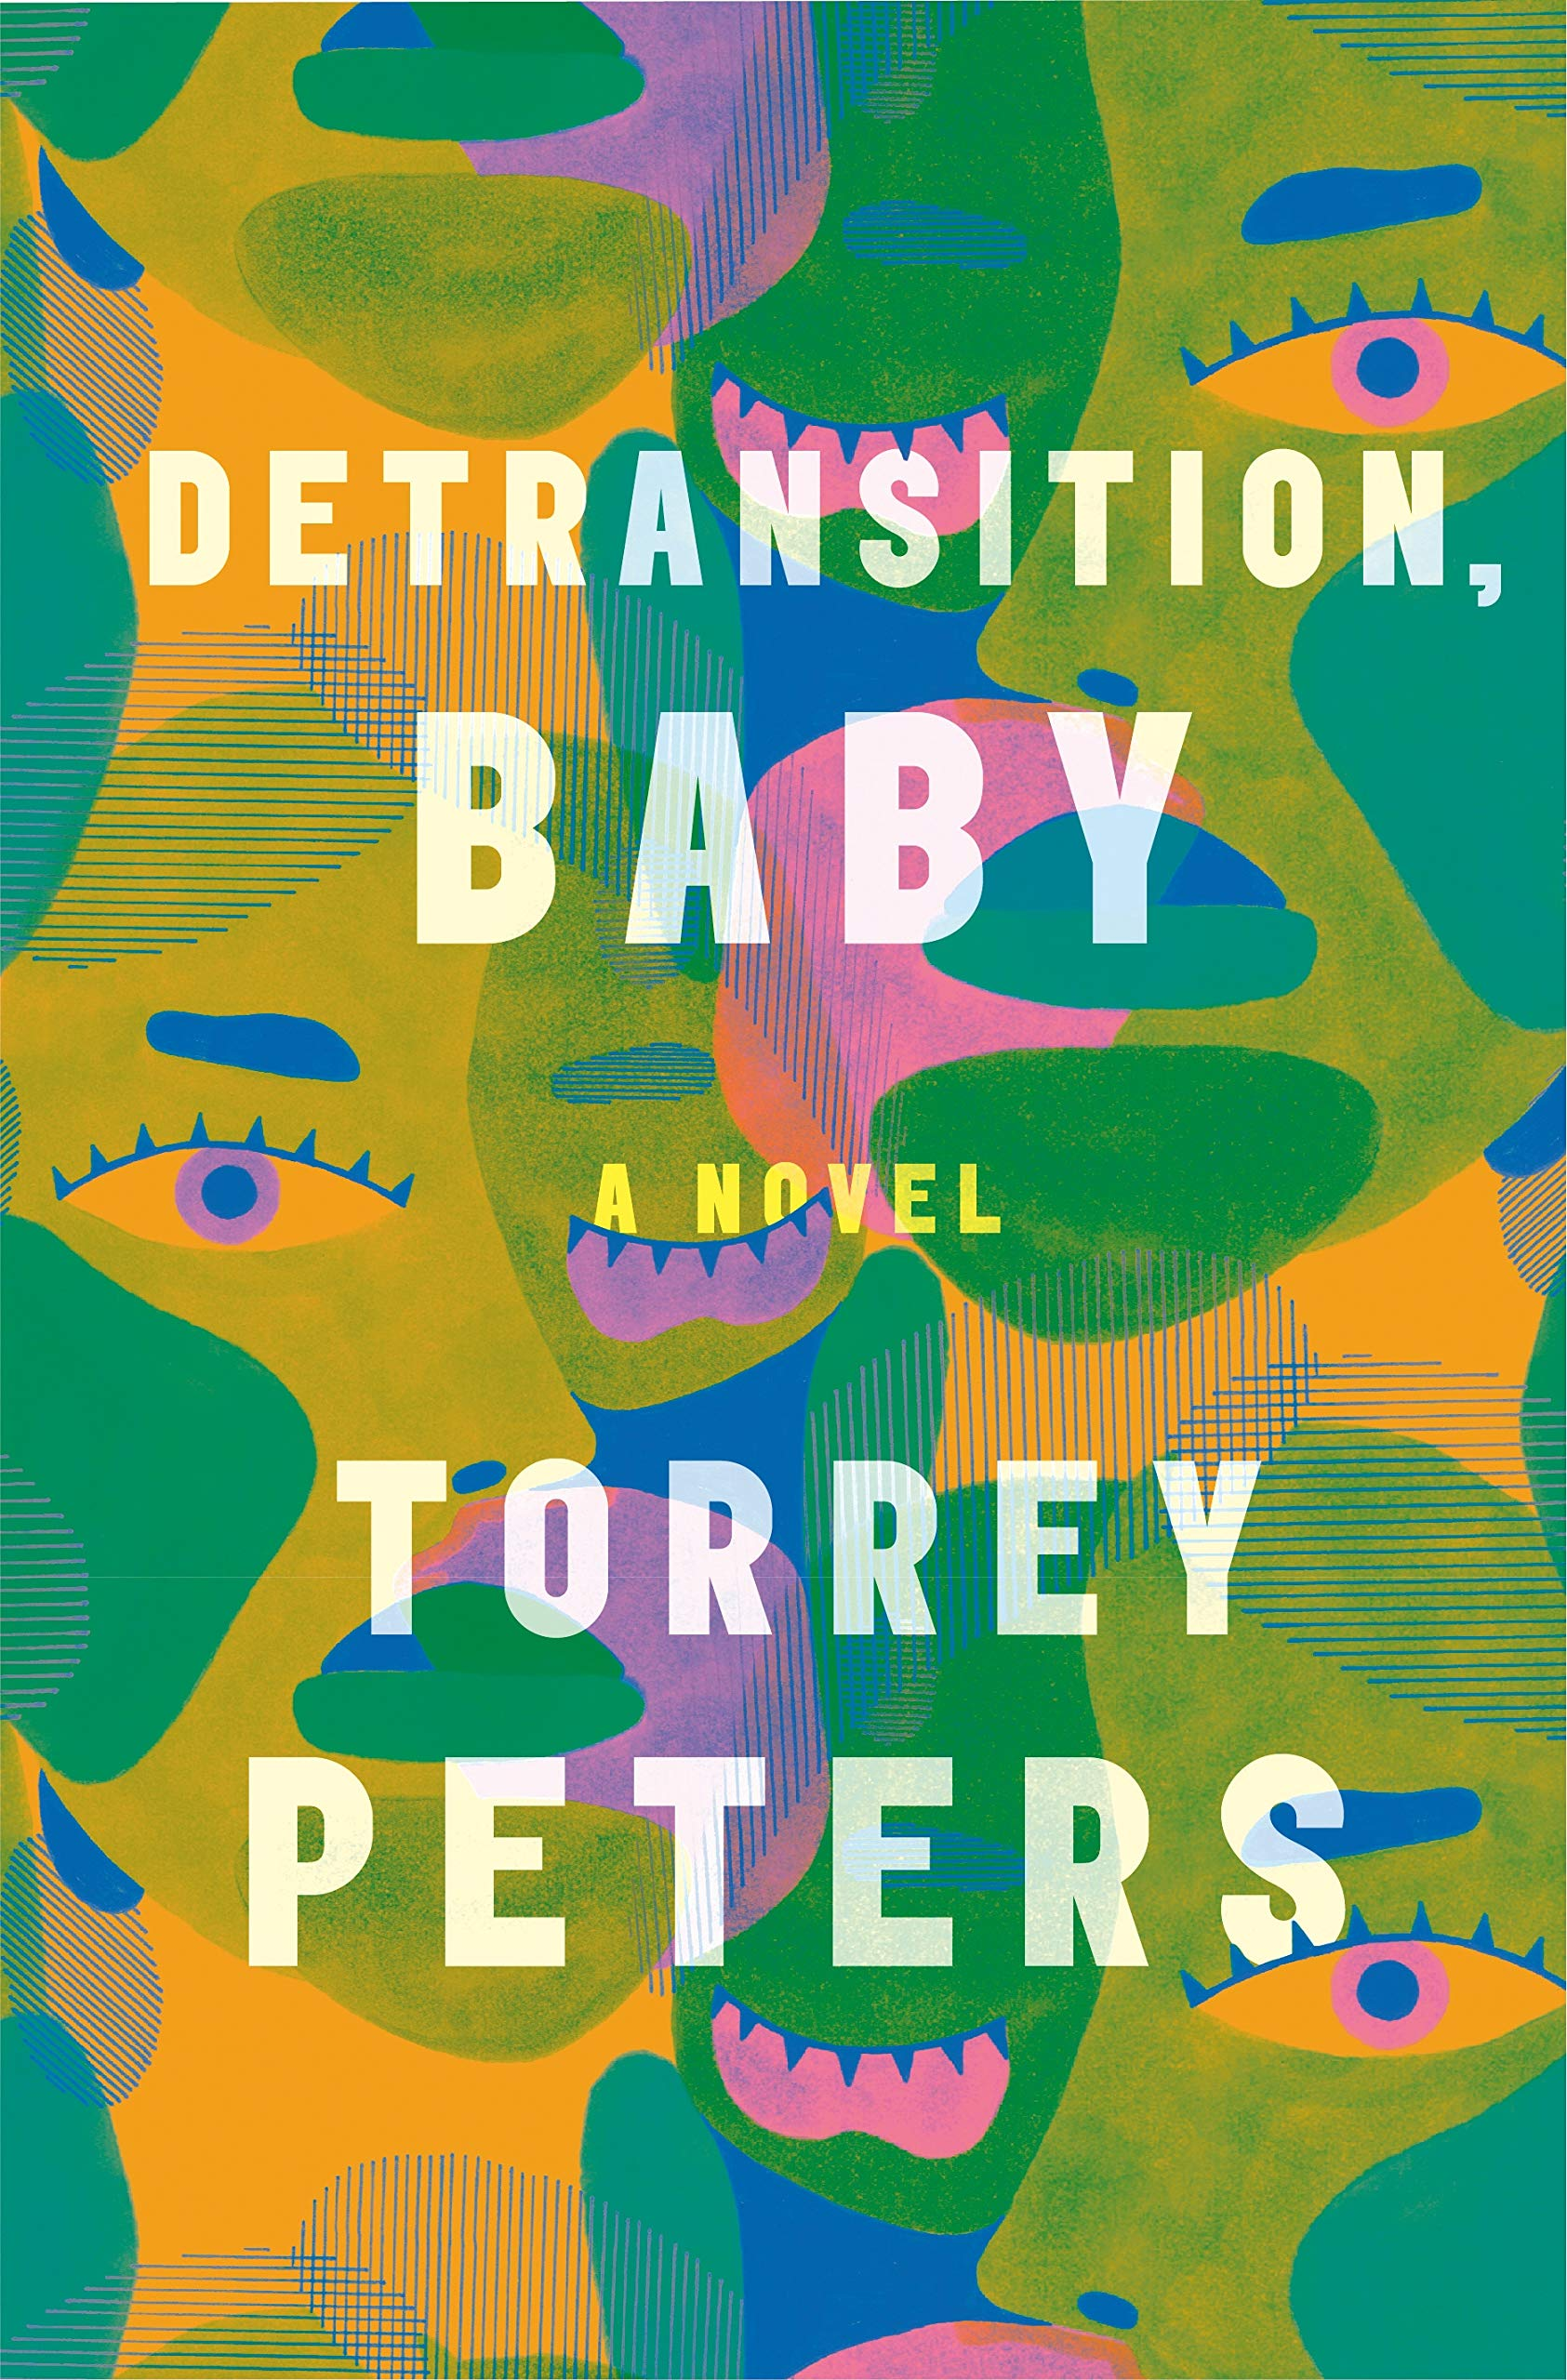 Detransition Baby A Novel